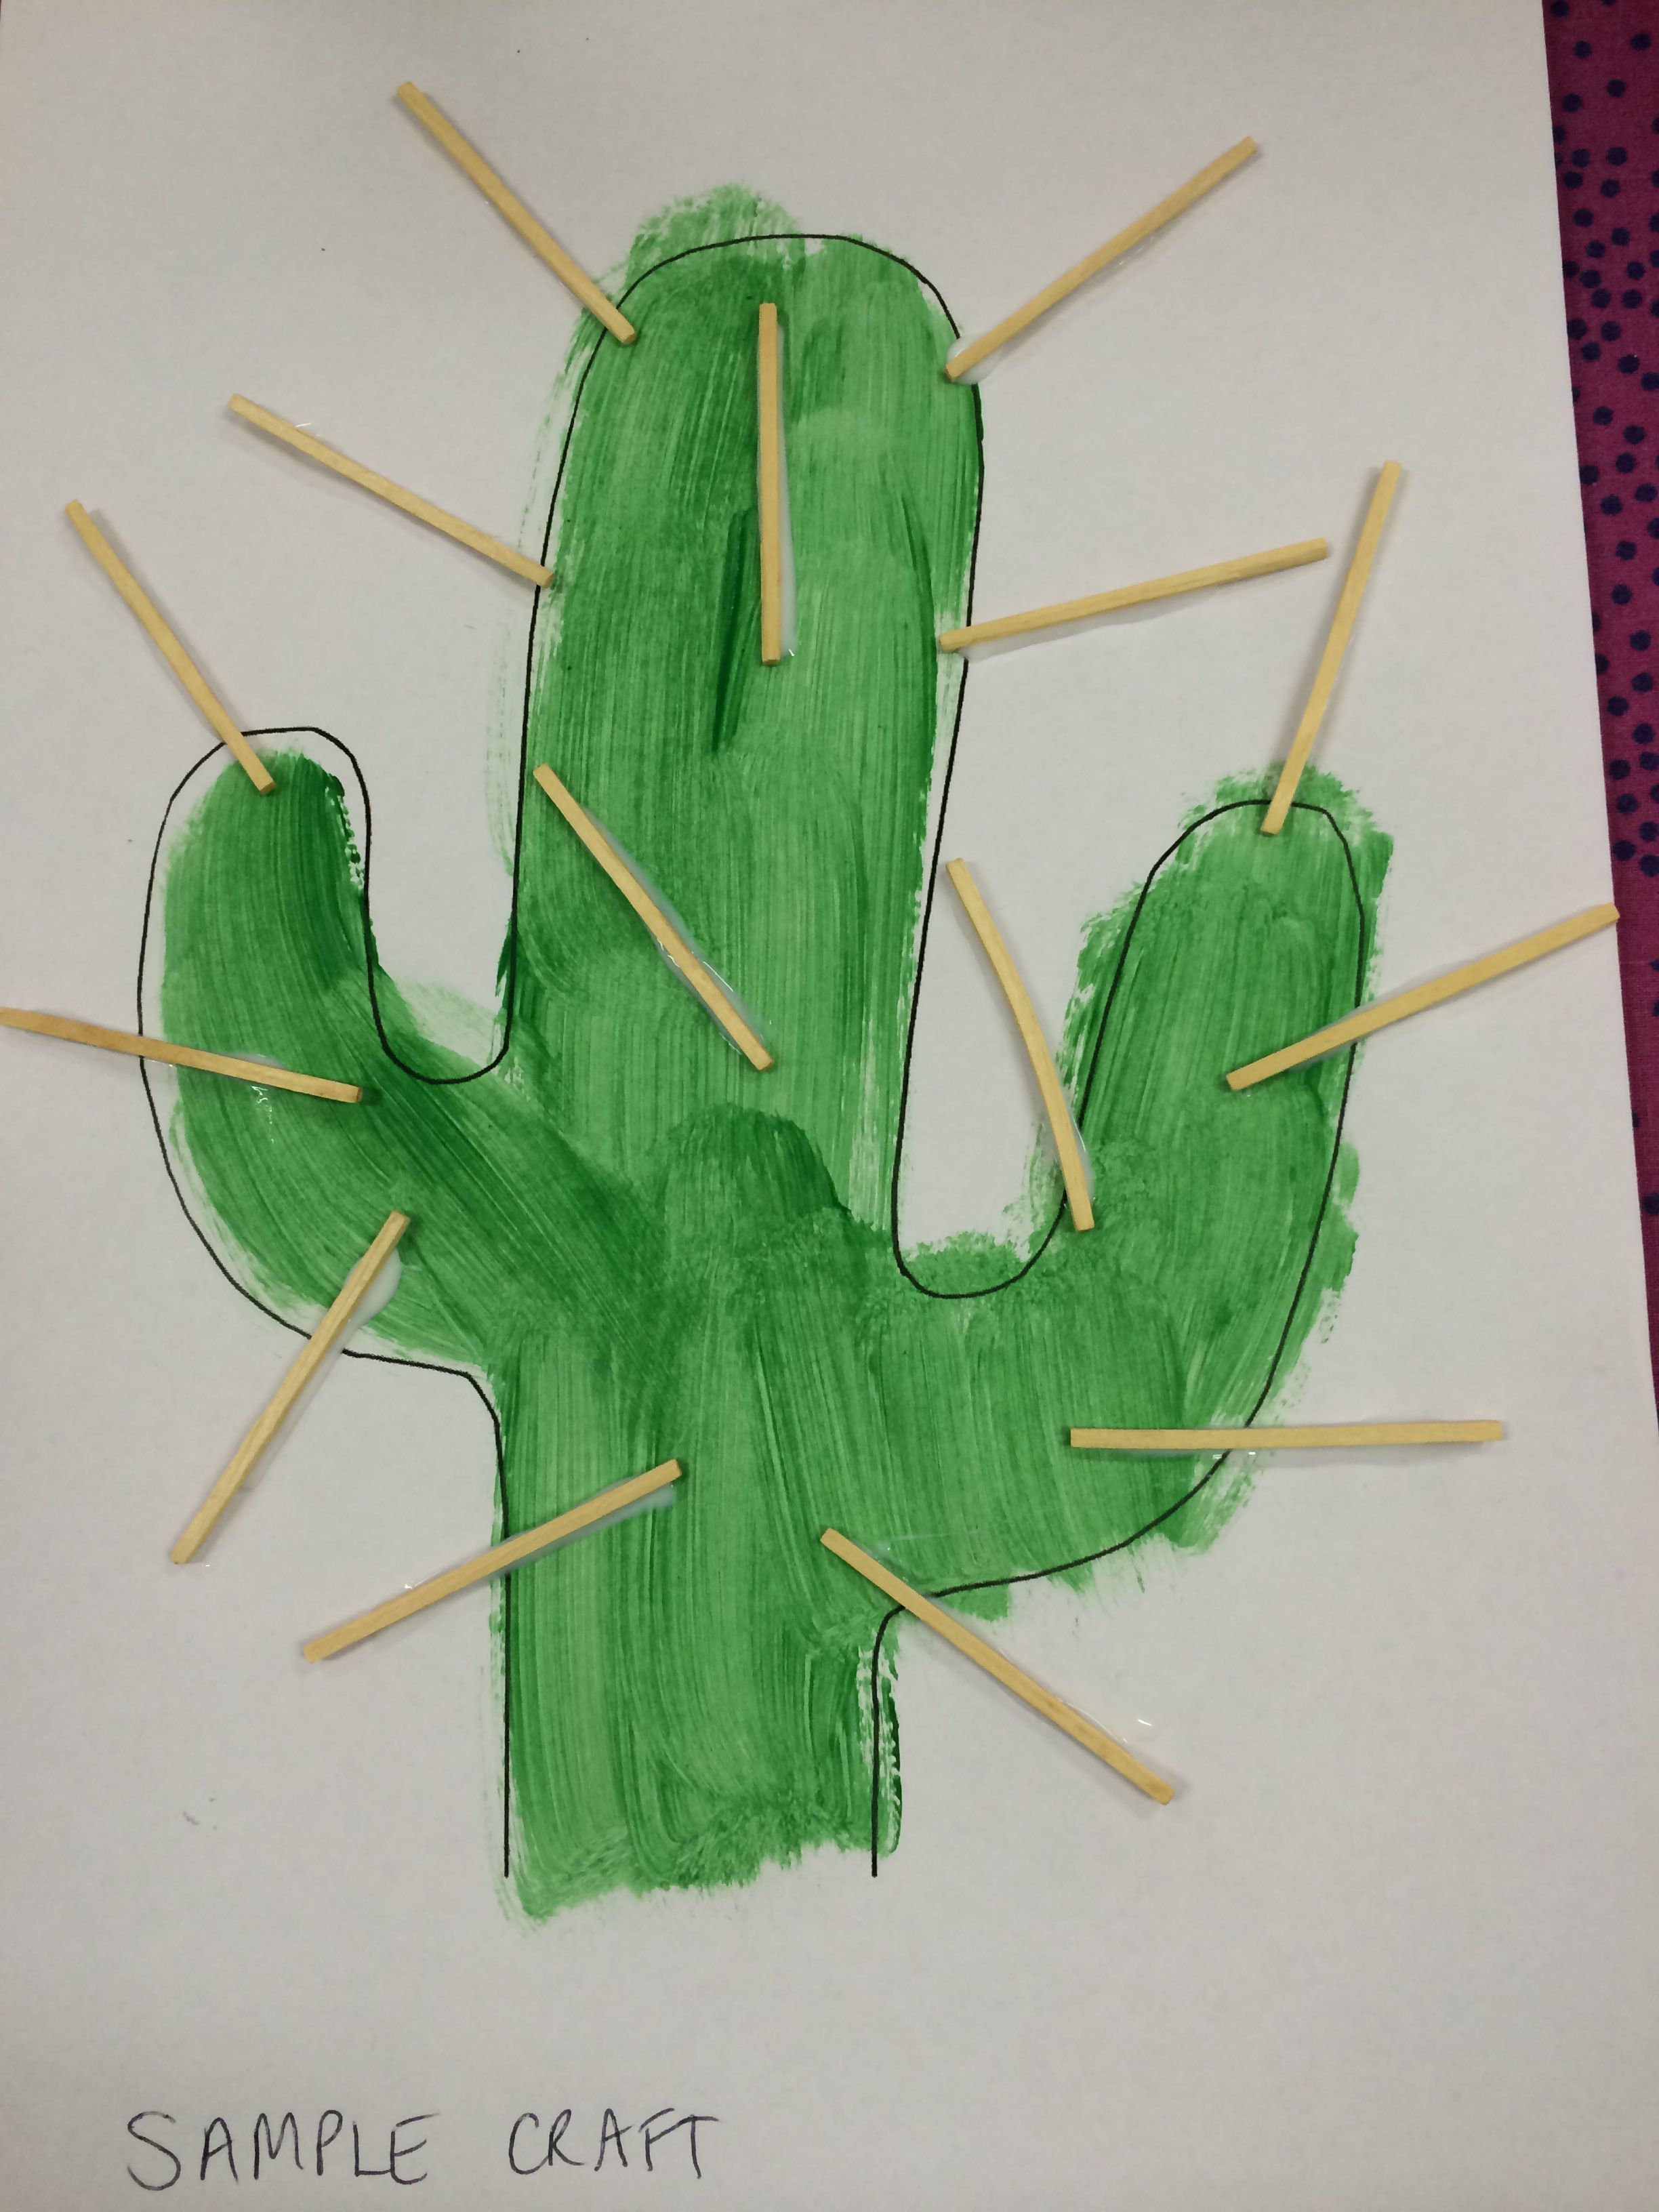 Wild West Craft Made By Painting A Cactus Template